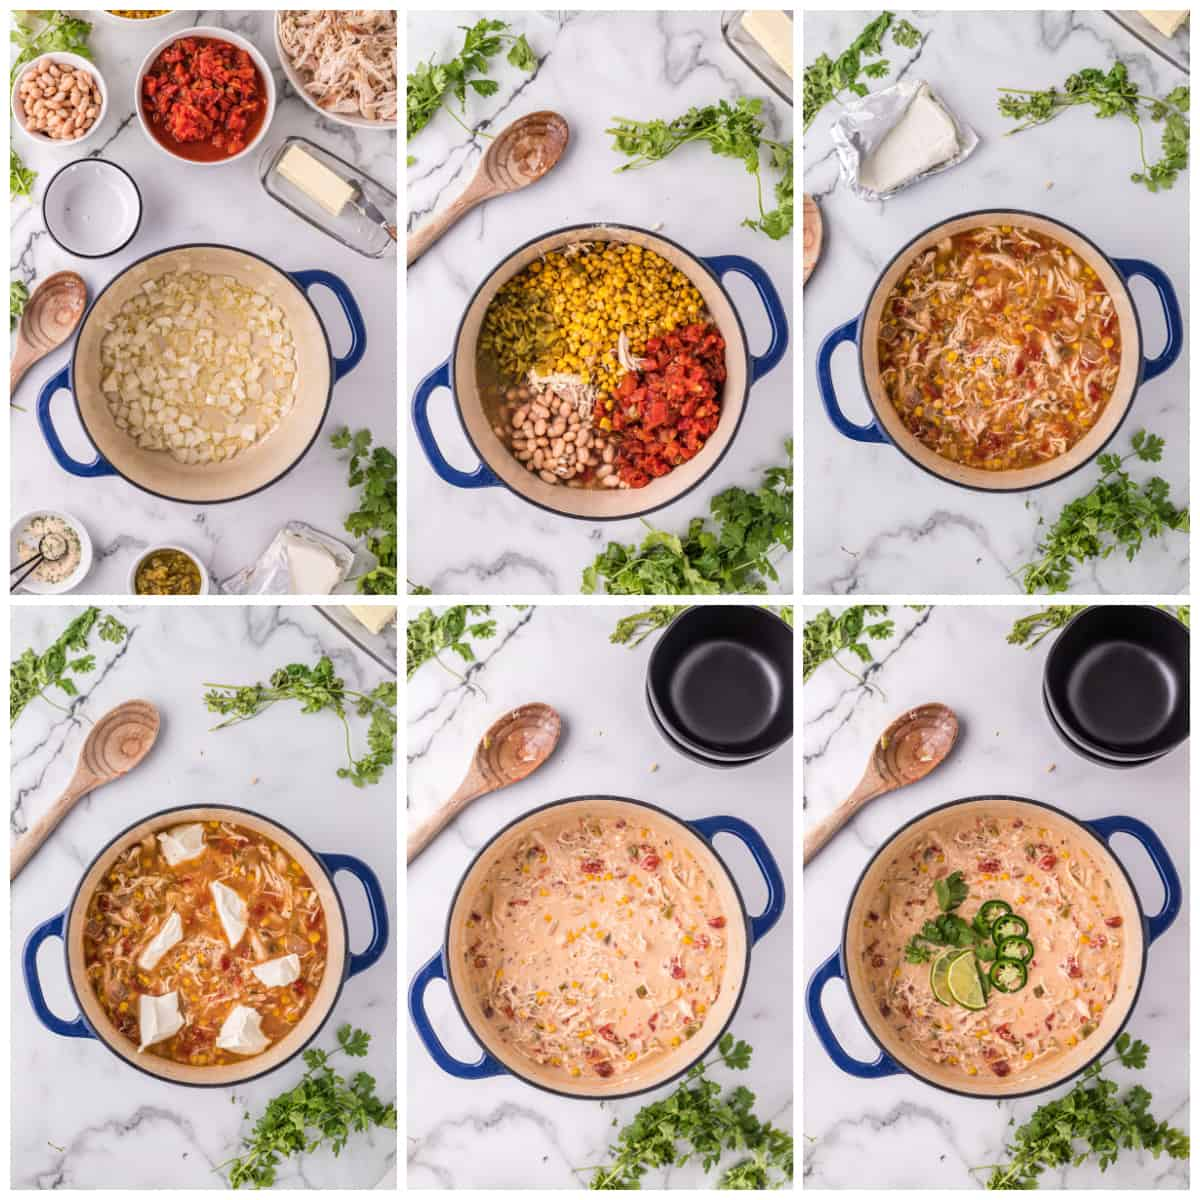 Step by step photos on how to make a White Chicken Chili Recipe.